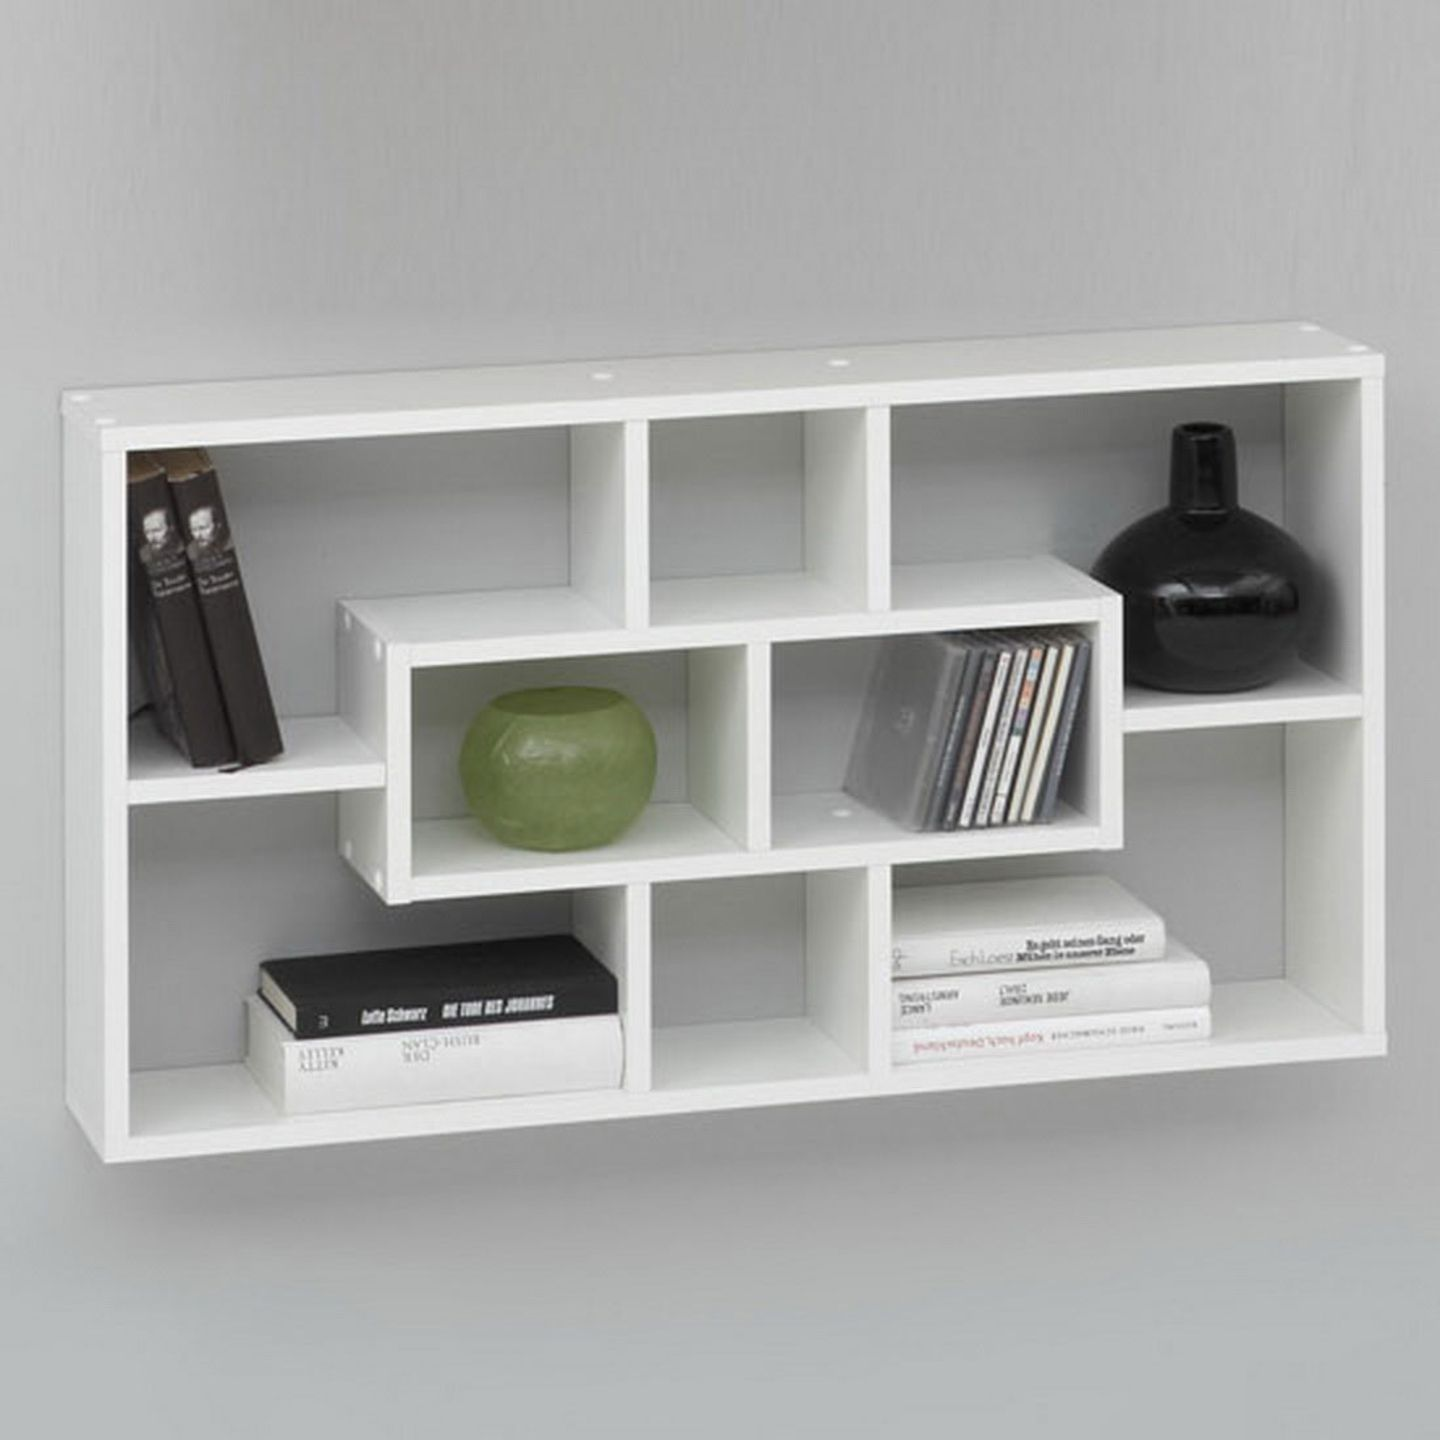 Le Bookcase Wall Shelves In White With 8 Compartments 6629 Home Office Storage A Wide Range Of Styles From Furniture Fashion